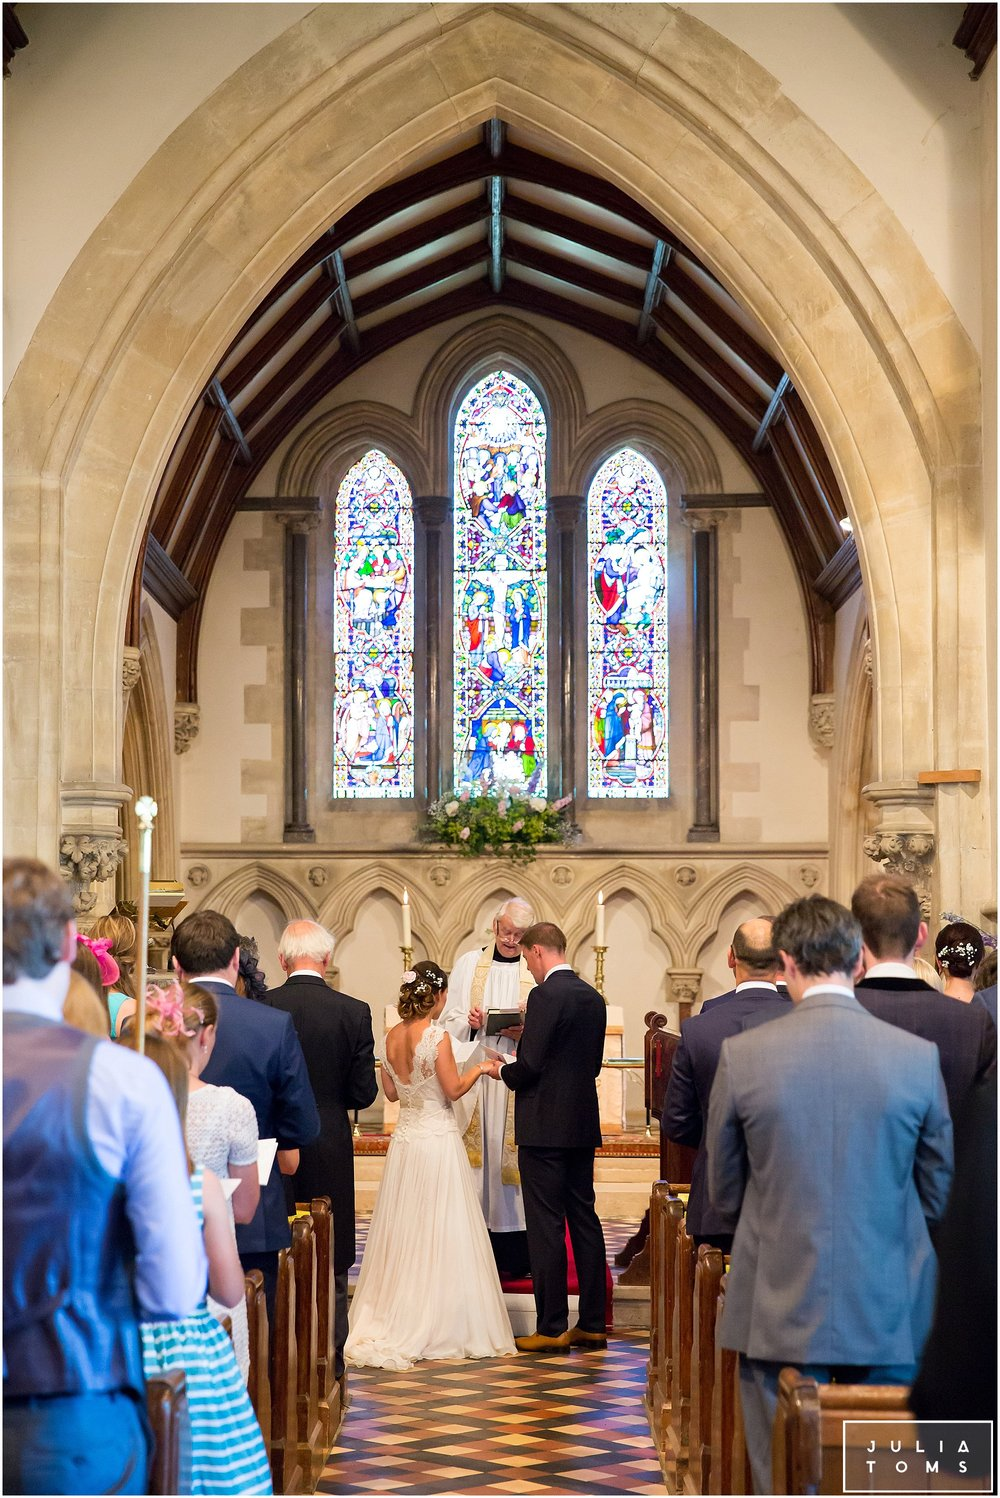 julia_toms_chichester_wedding_photographer_portsmouth_028.jpg